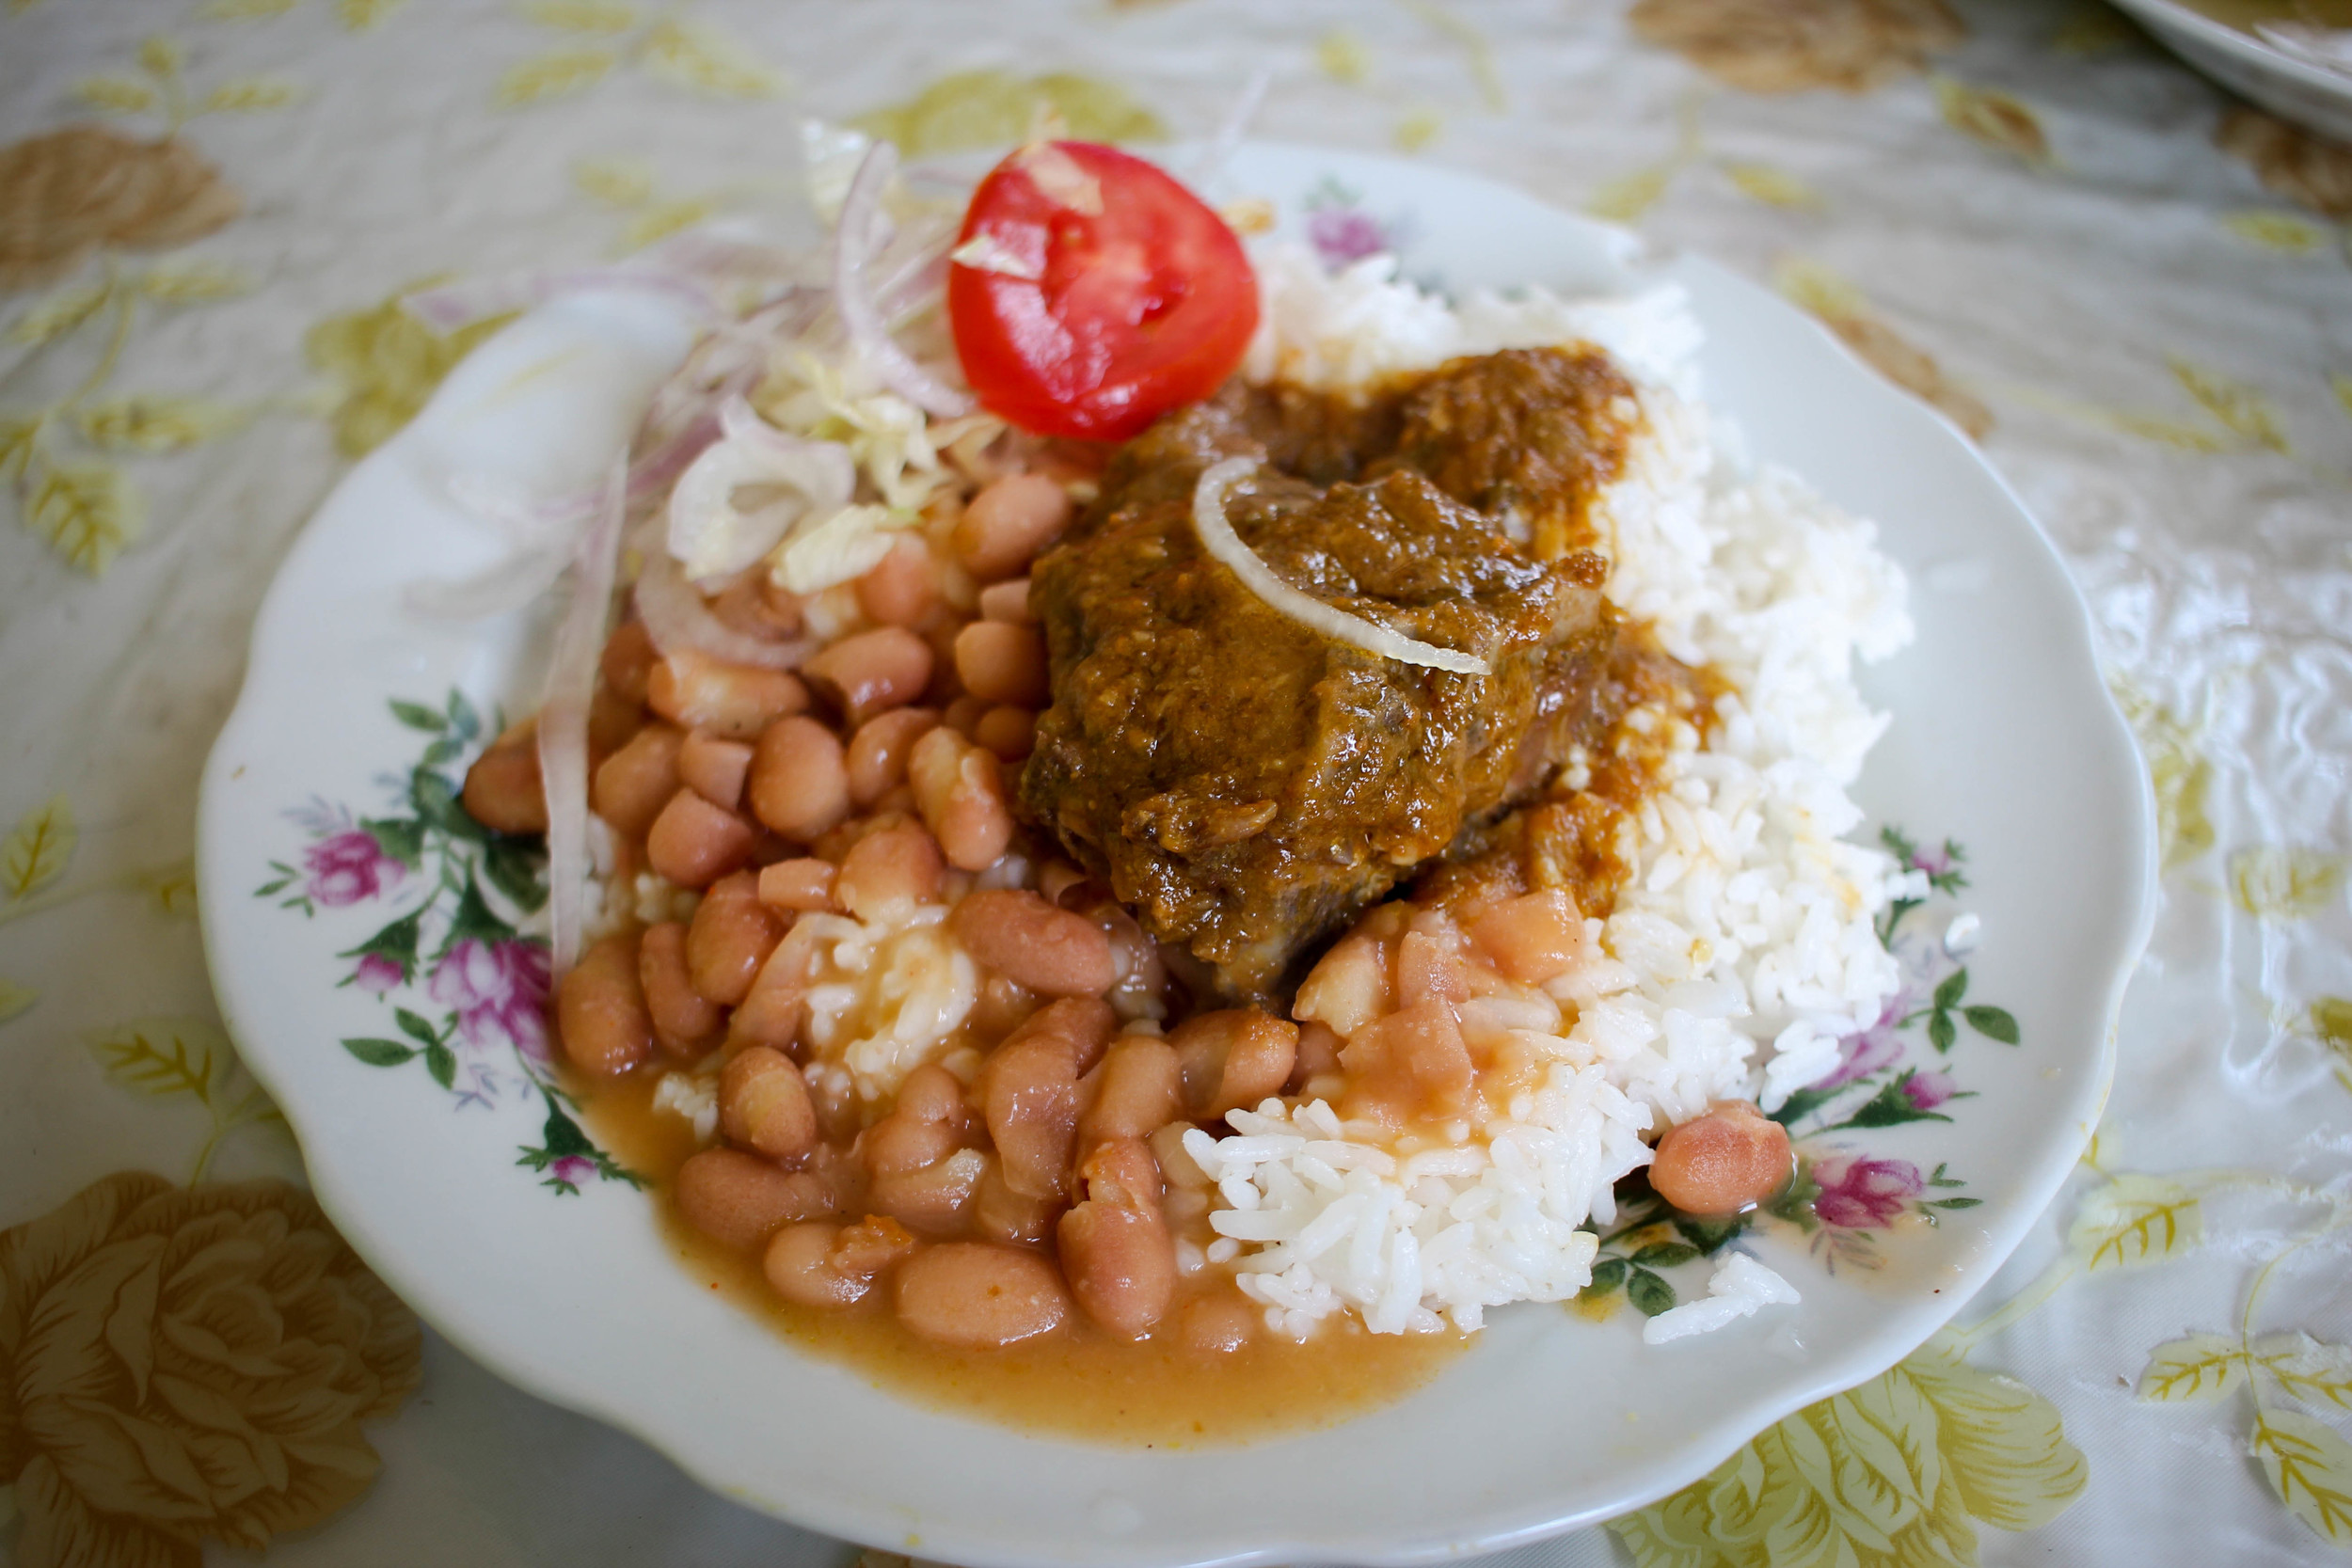 Stewed meat with menestras (beans), rice, and salad (i.e. red onion, iceberg lettuce, and a slice of tomato).